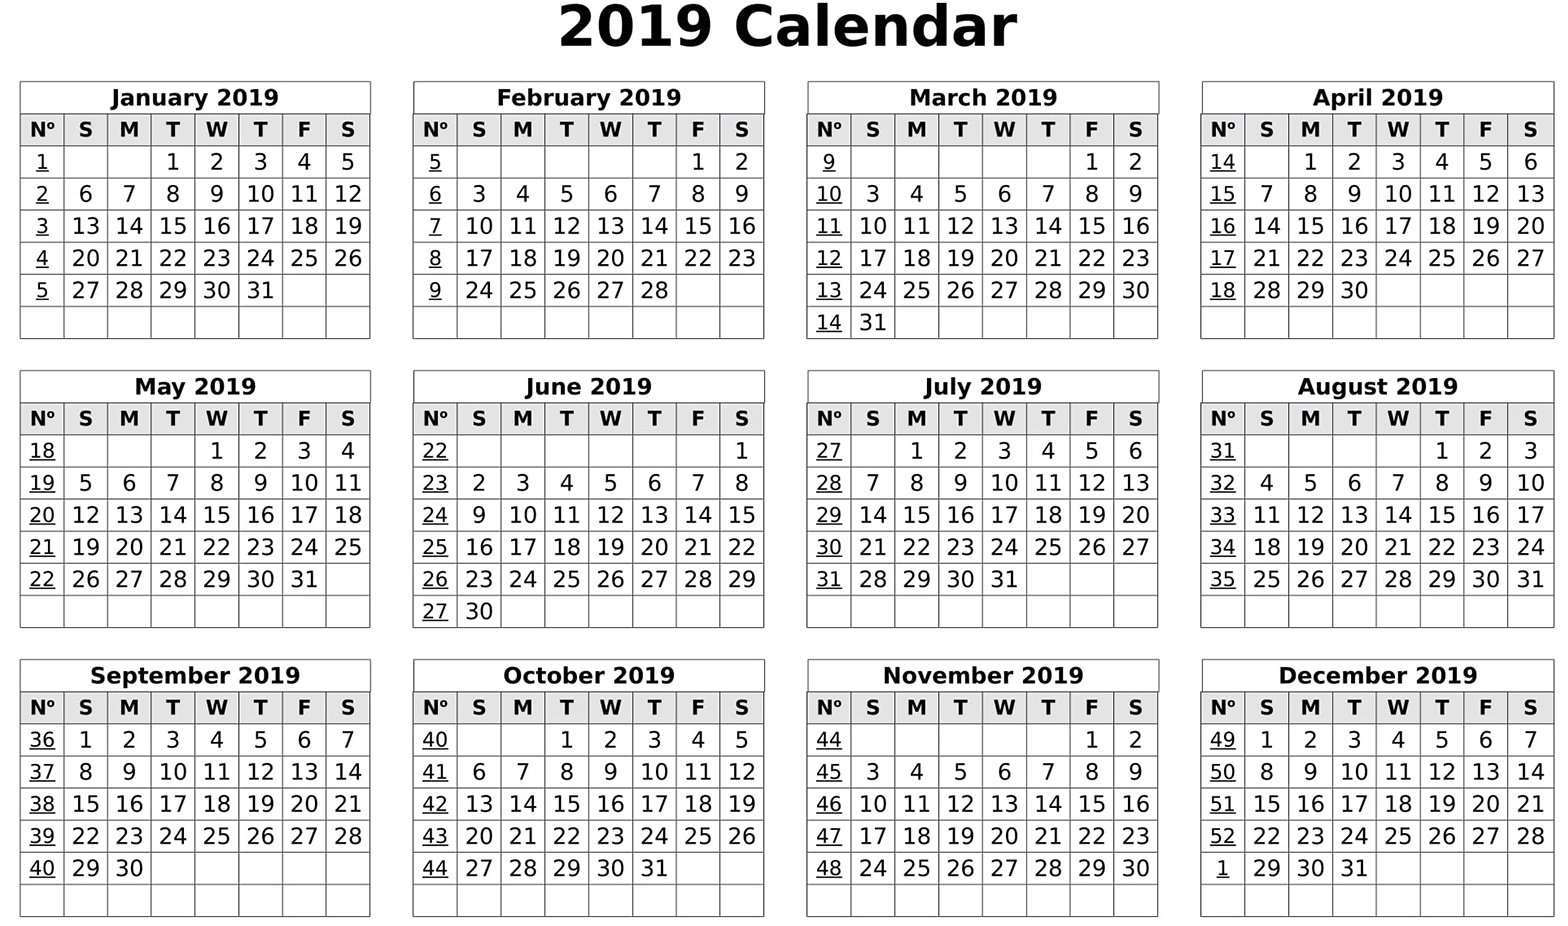 Calendar 2019 Print Out | Free Printable 2018 Calendar Template Word Calendar 2019 Excel By Week